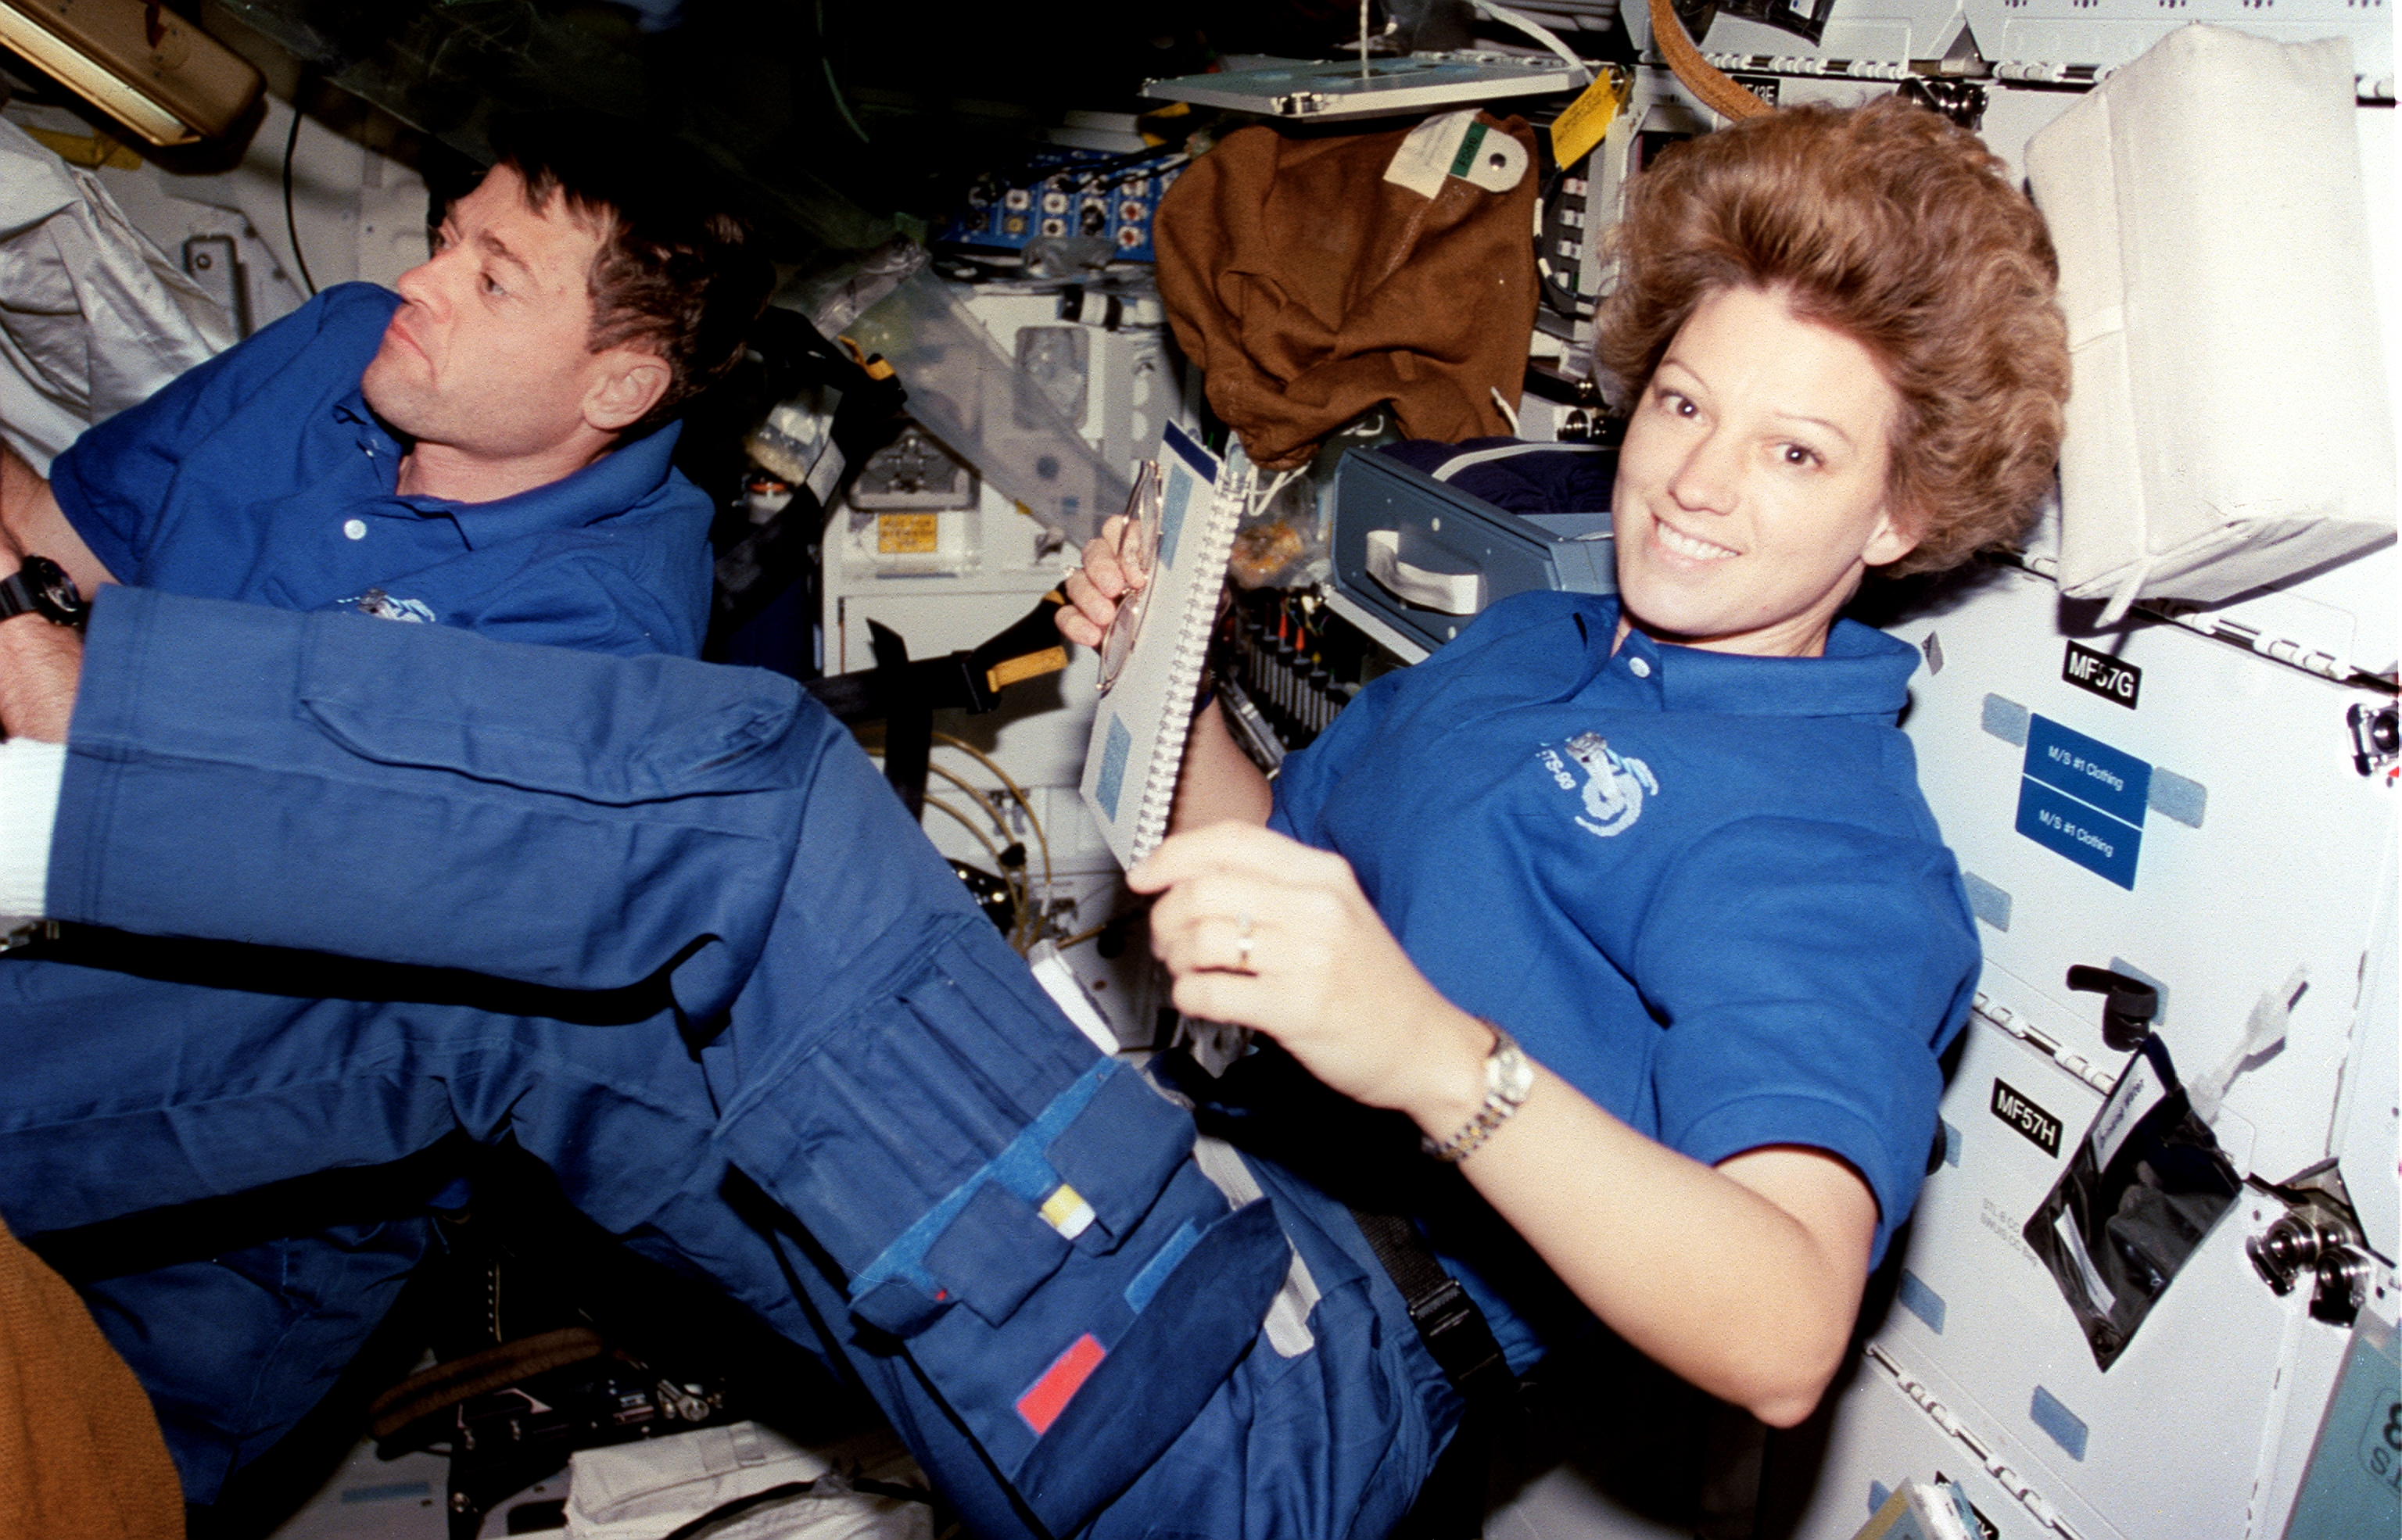 Collins on STS-93 with Columbia in 1999, when she became the first female commander of a shuttle mission.